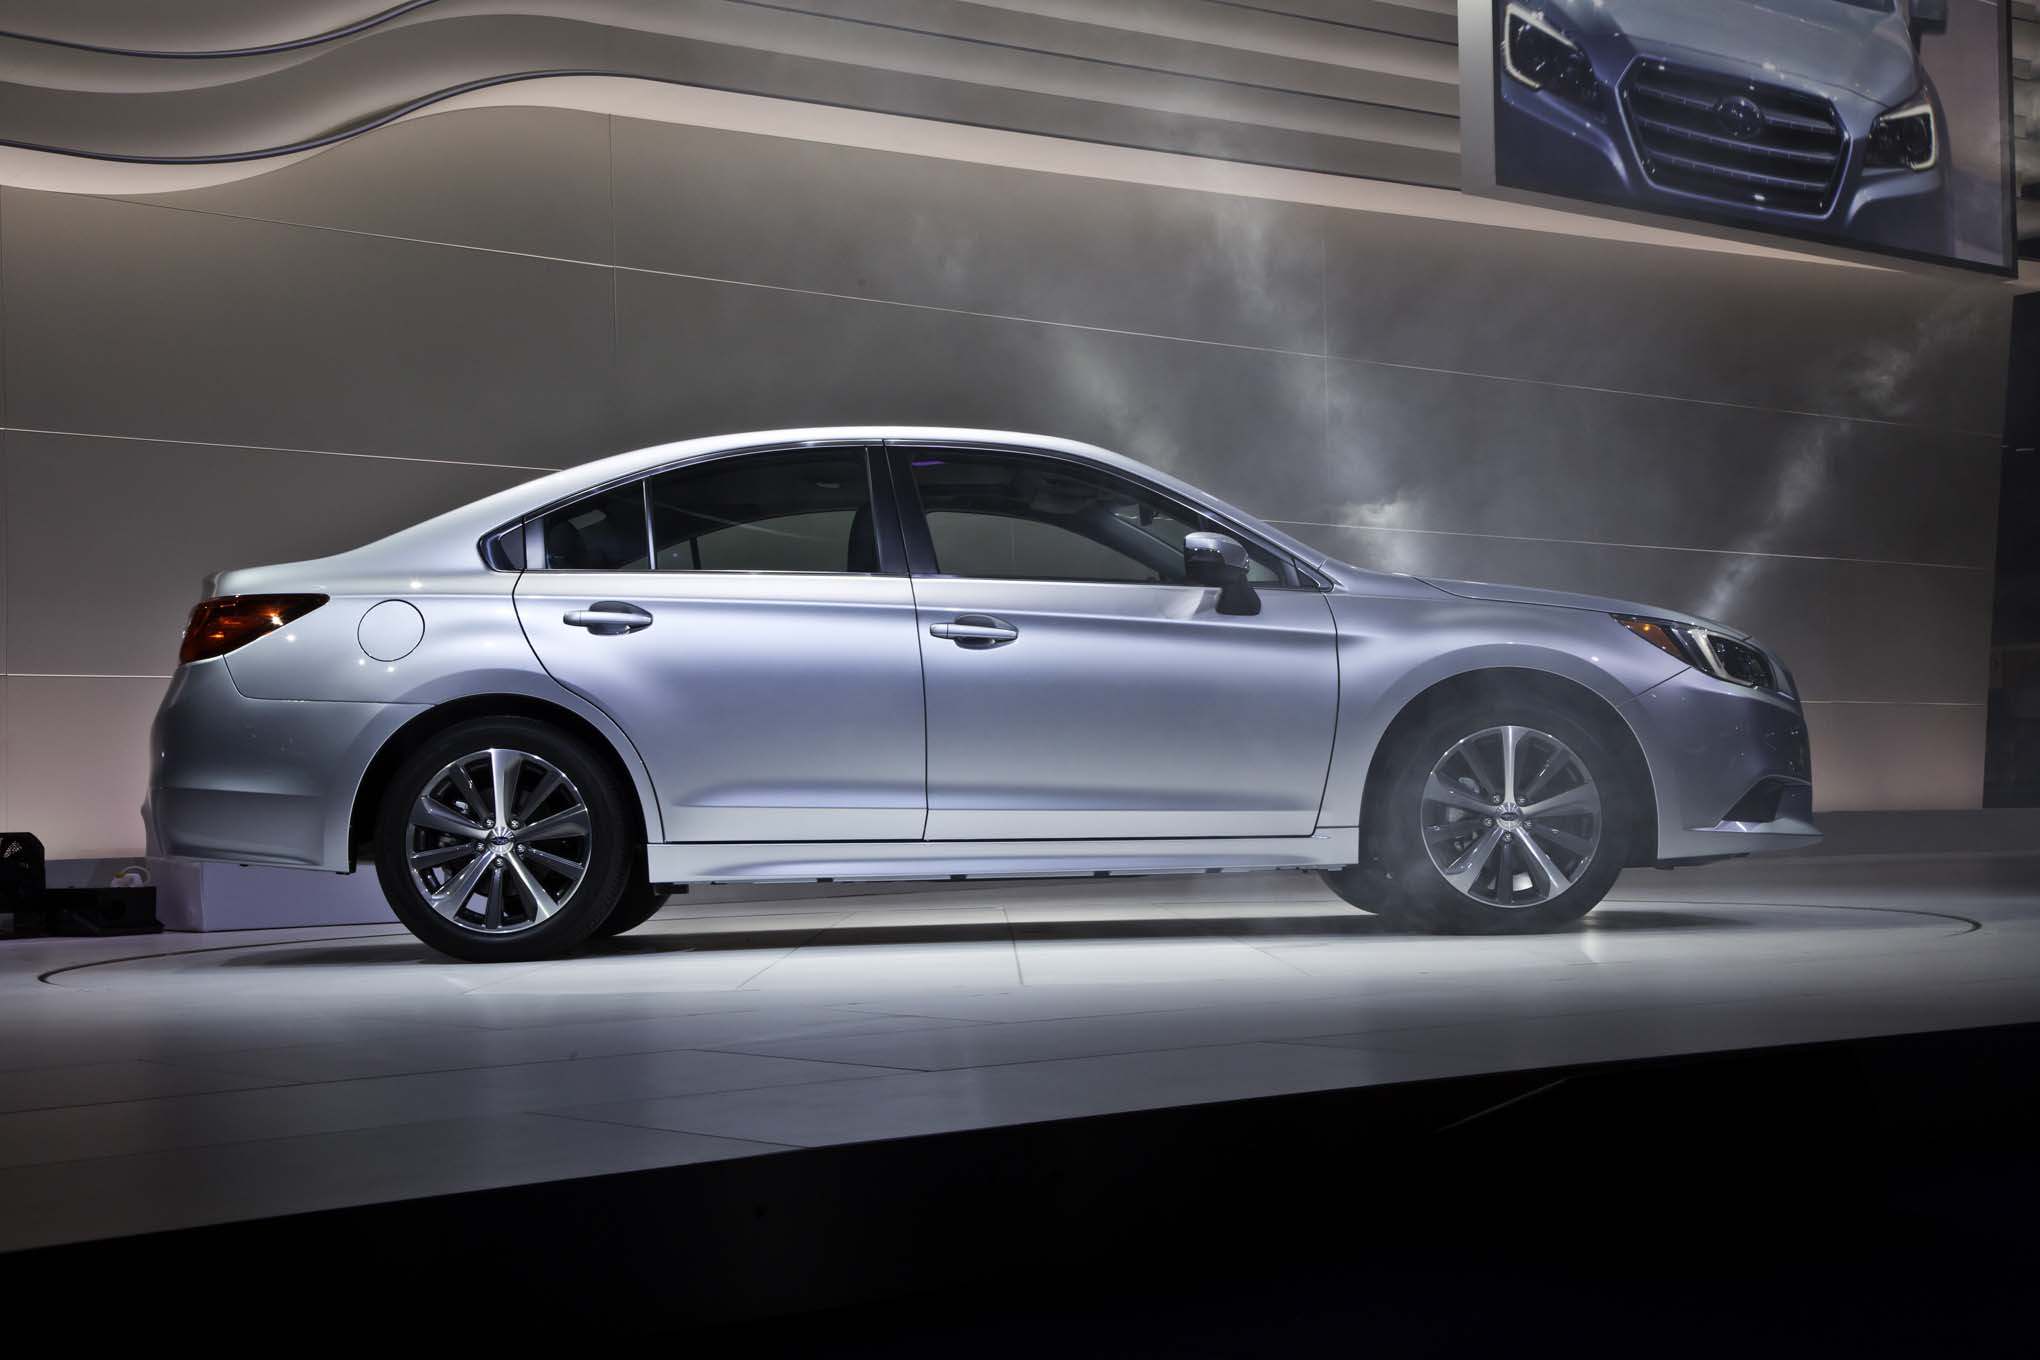 2015 Subaru Legacy Side View Auto Show